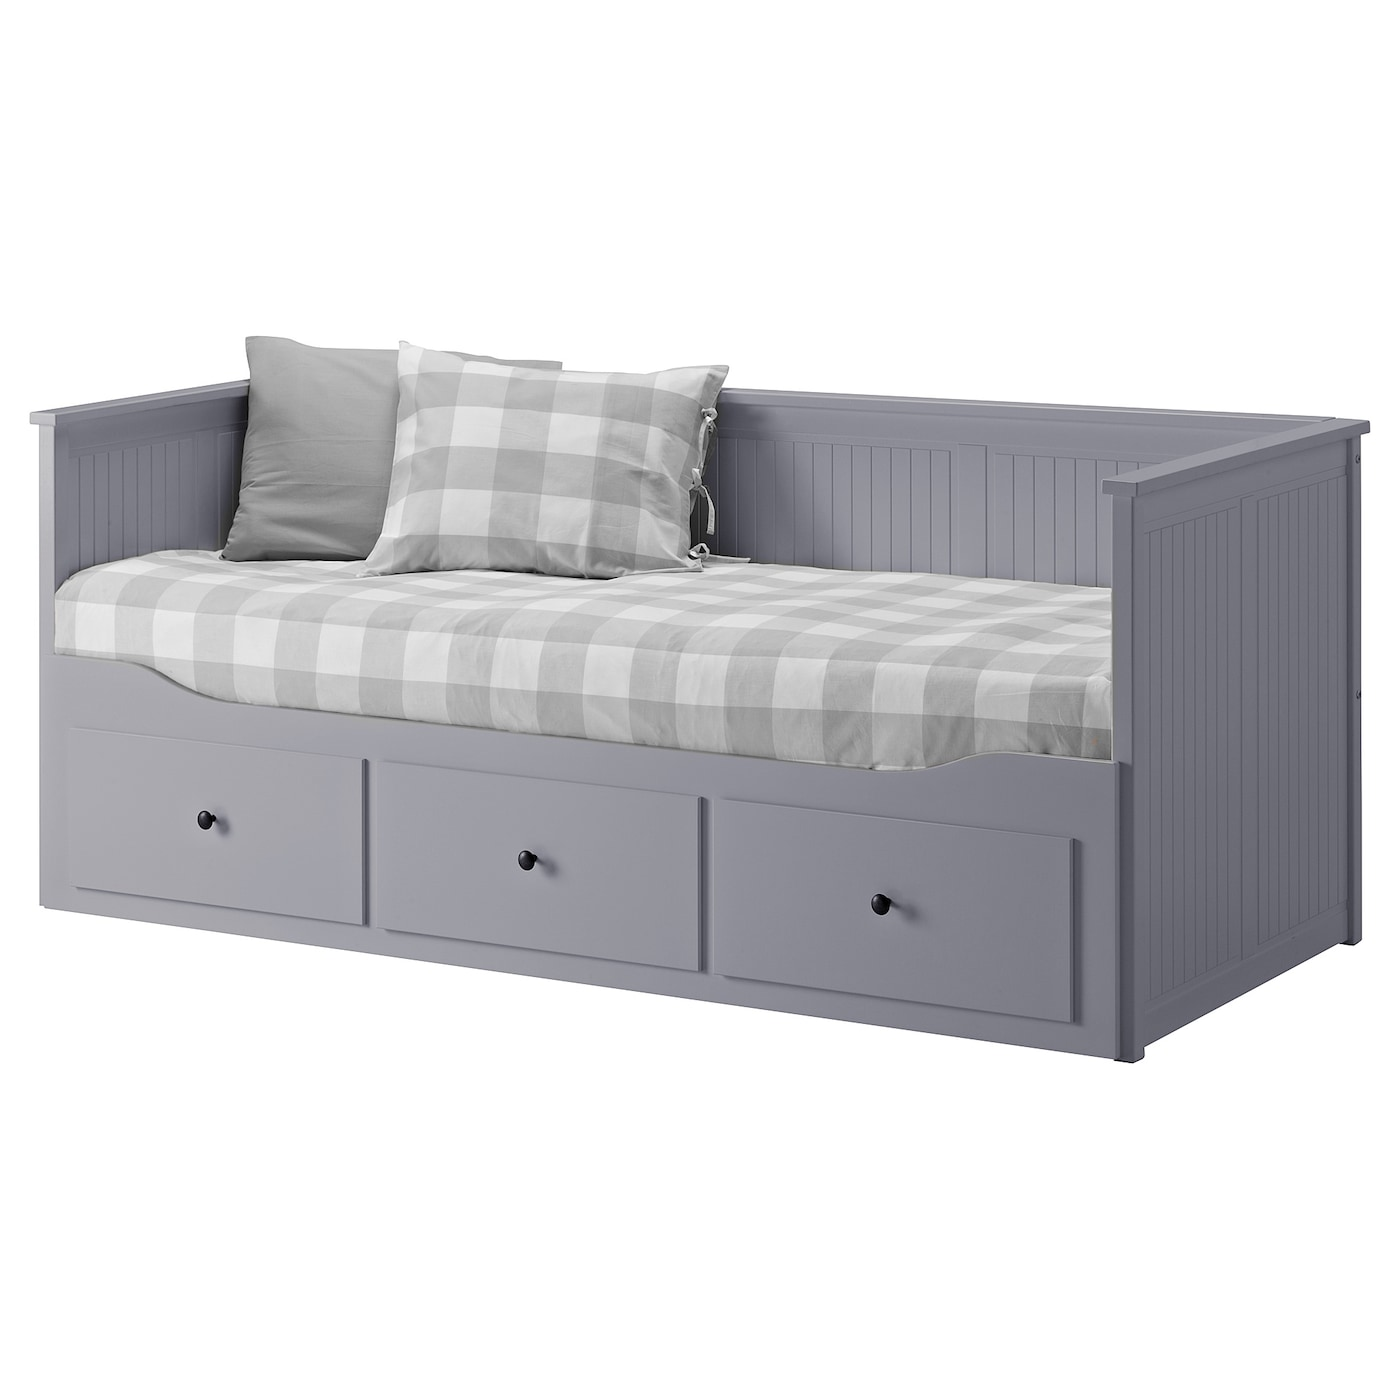 HEMNES Day bed frame with 3 drawers Grey 80 x 200 cm   IKEA